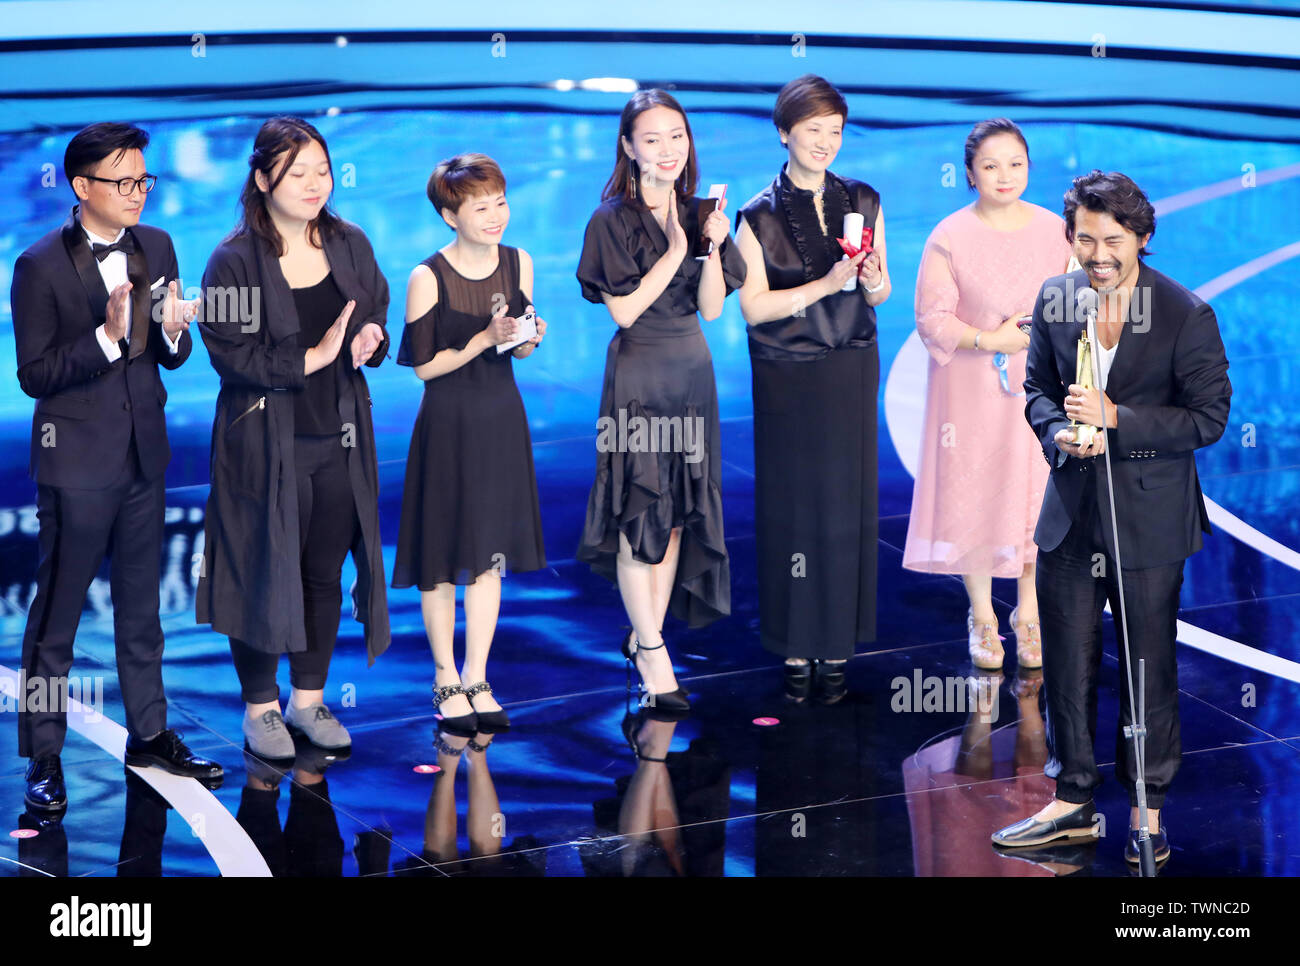 (190622) -- SHANGHAI, June 22, 2019 (Xinhua) -- Cast members of the Chinese film 'To Live To Sing' attend the Asian New Talent Award section of the 22nd Shanghai International Film Festival in Shanghai, east China, June 21, 2019. 'To Live To Sing,' a Chinese film about traditional Sichuan opera, won the best film award at the Asian New Talent Award section of the 22nd Shanghai International Film Festival Friday. The best director award was presented to Japanese filmmaker Yuko Hakota for her film 'Blue Hour,' and the best screenplay award went to Indonesian film 'Mountain Song.' The As - Stock Image